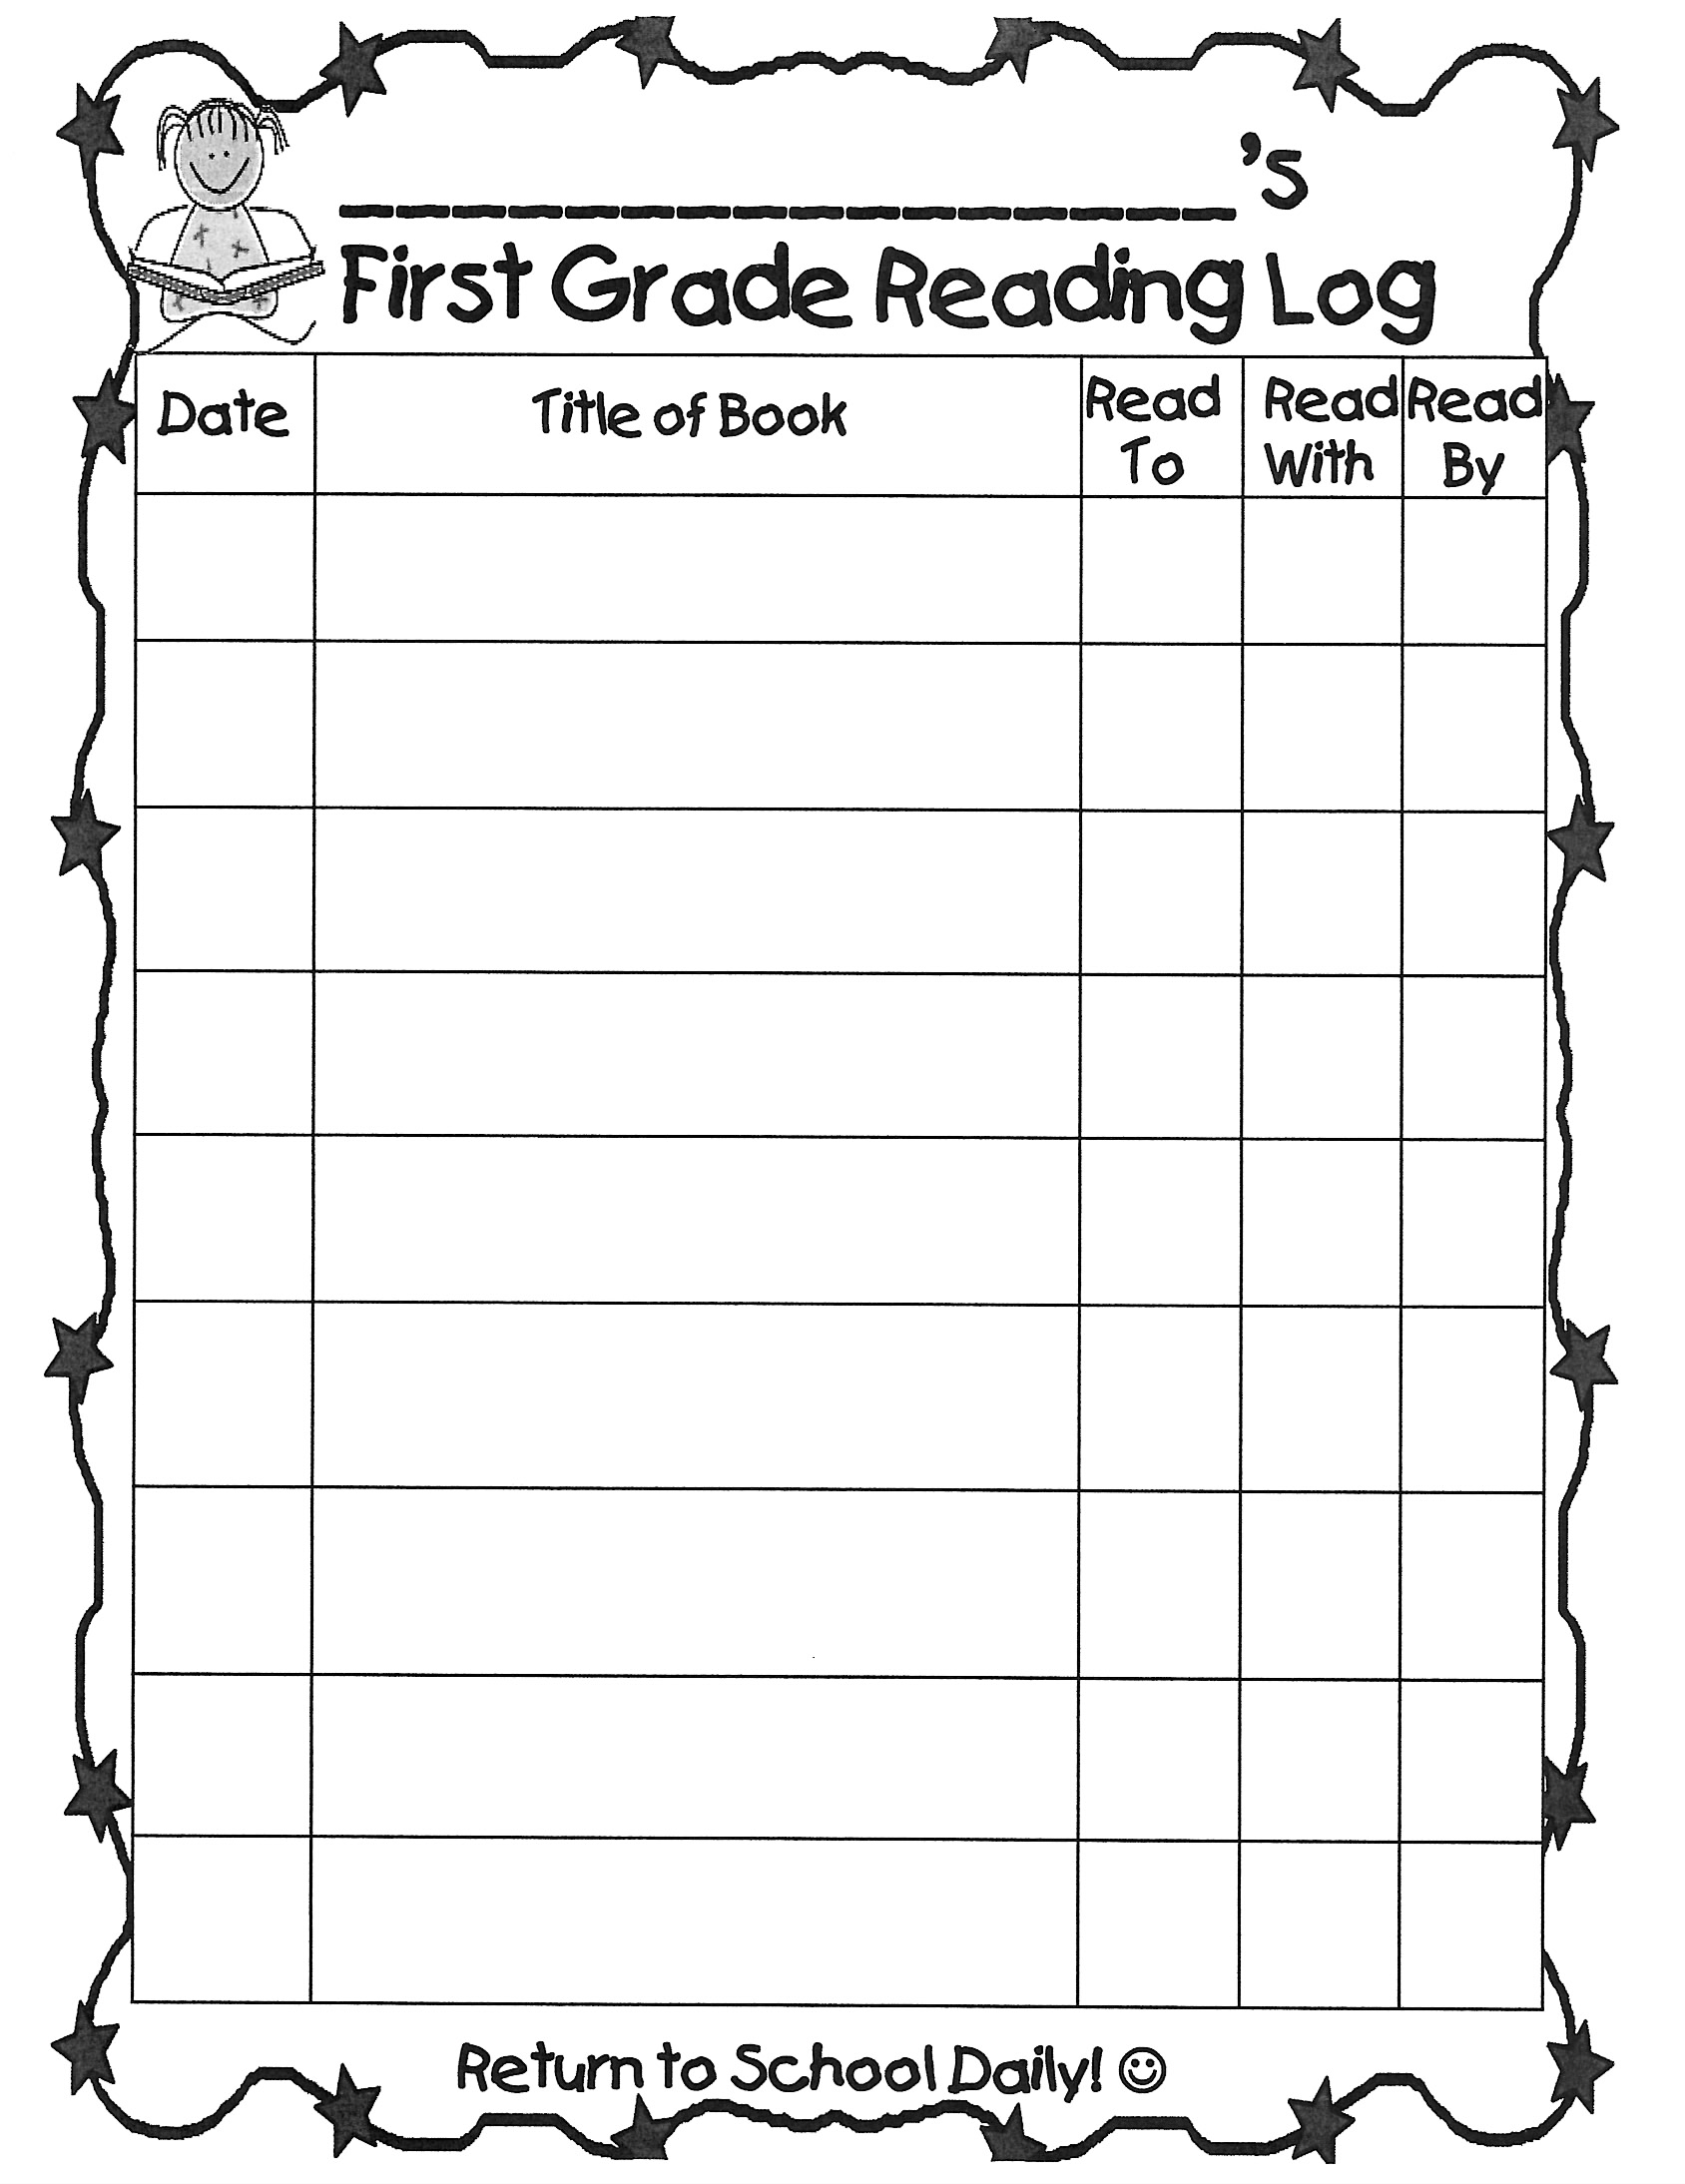 Farelli Annette Grade 1 Teacher Reading Log Form